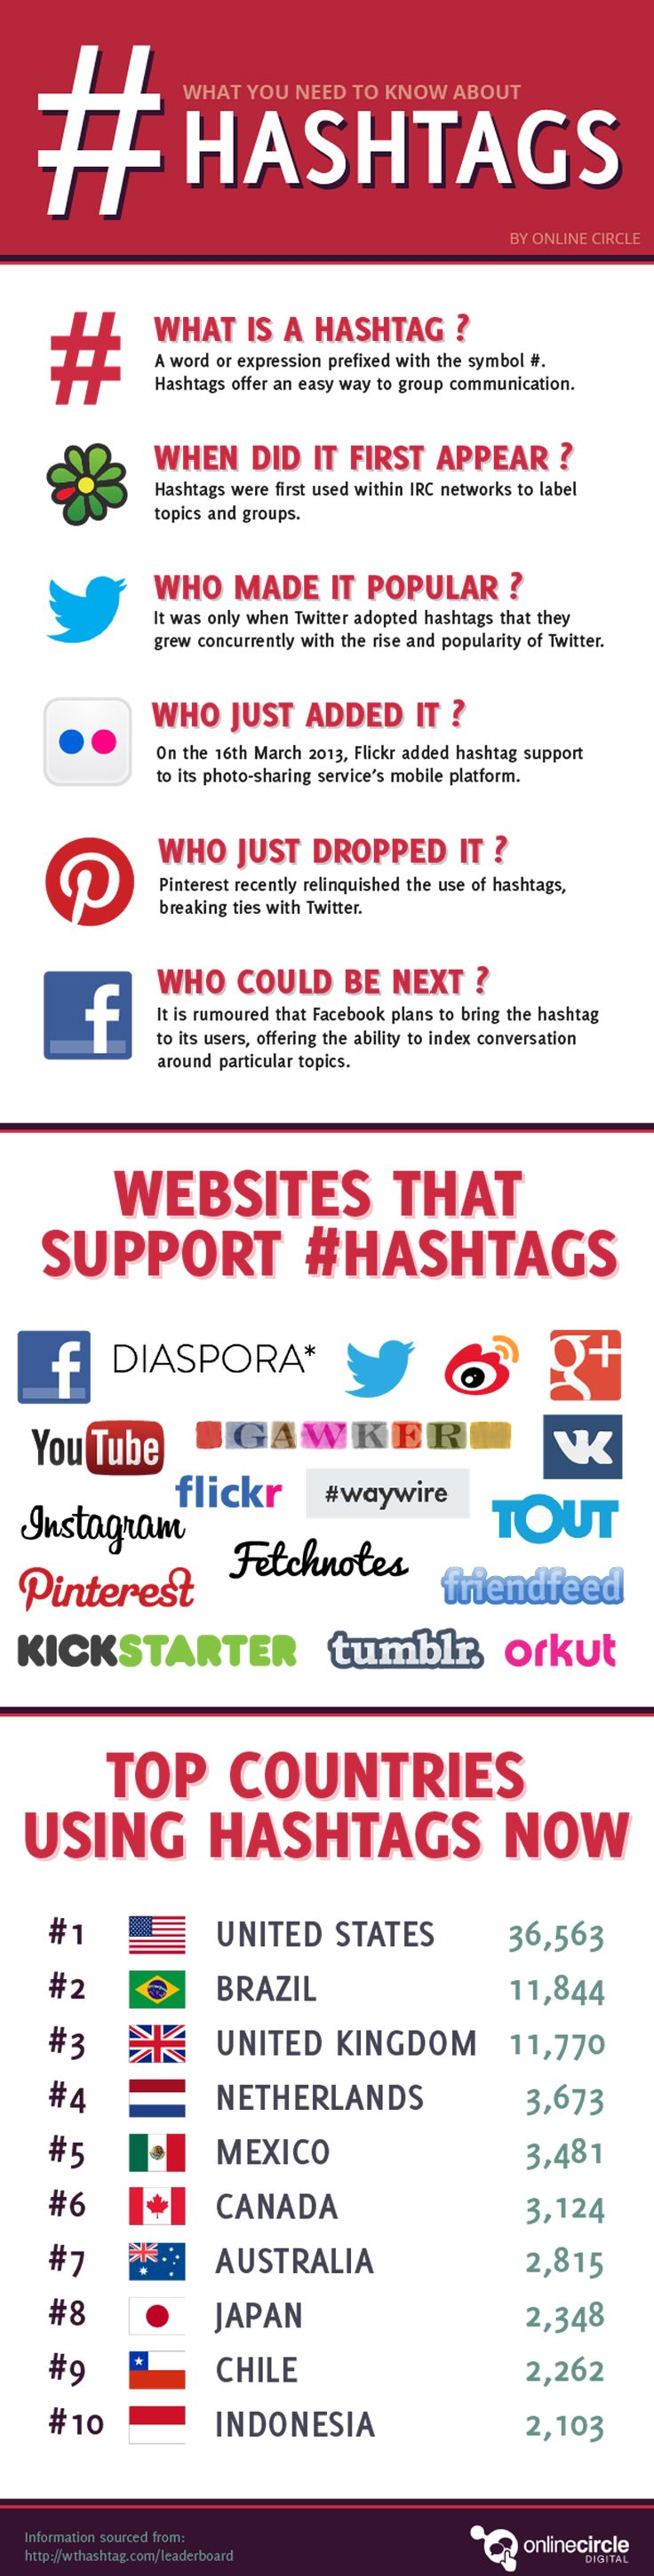 What do you need to know about Hashtags - infographic